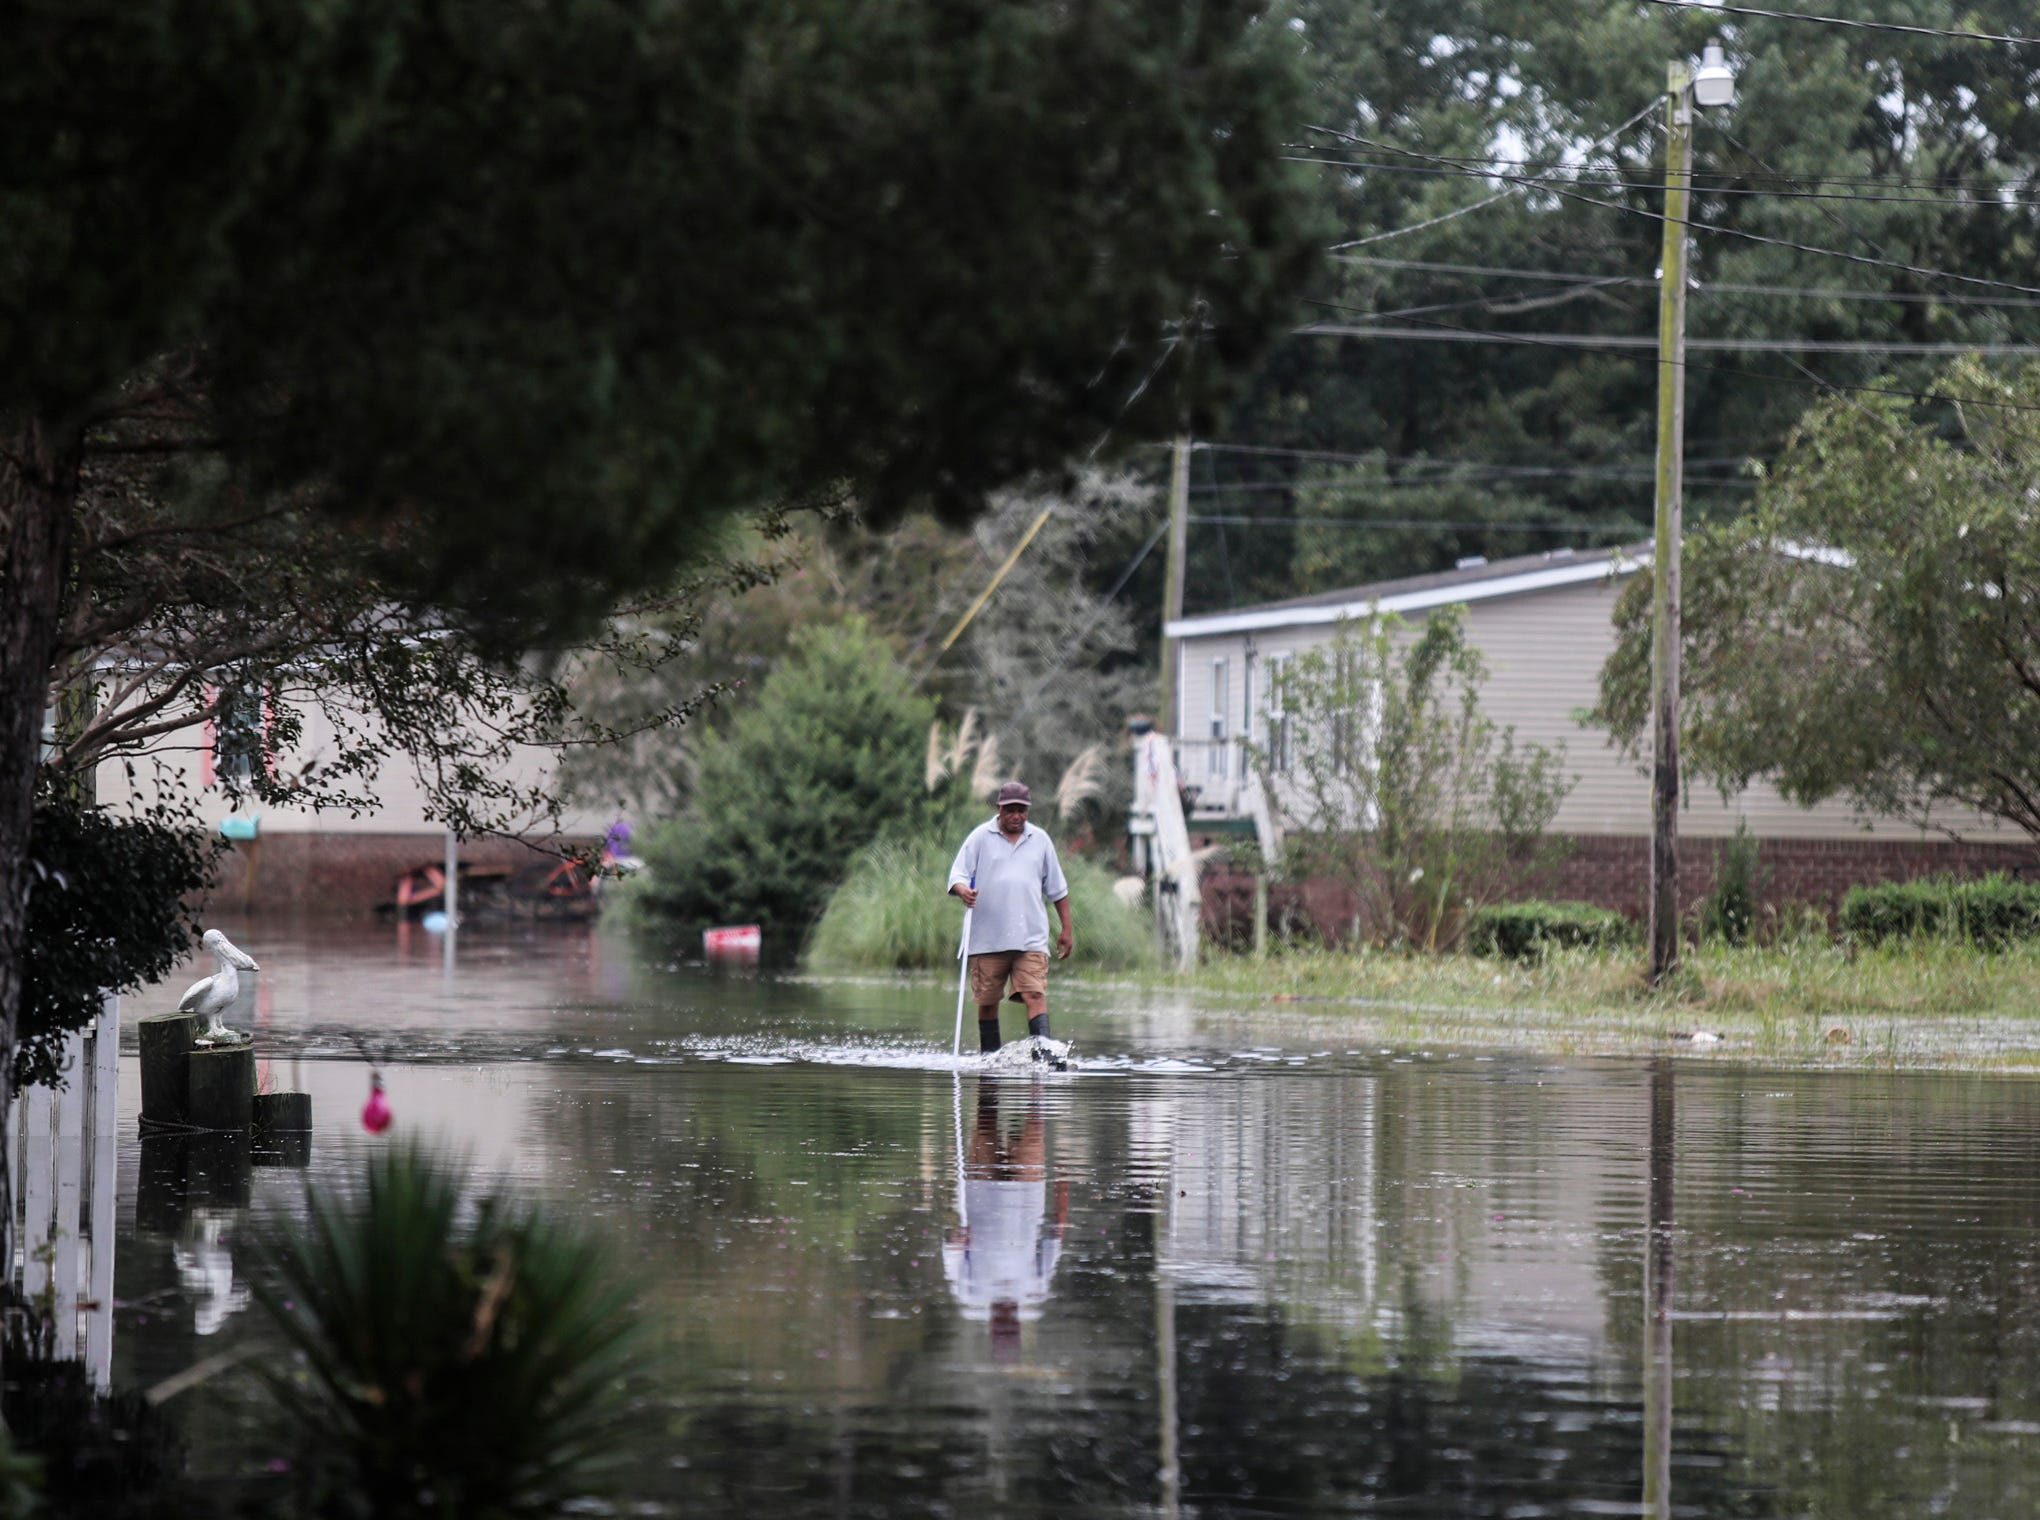 A resident walks down a flooded street in Belhaven, N.C., on Saturday, Sept. 15, 2018.